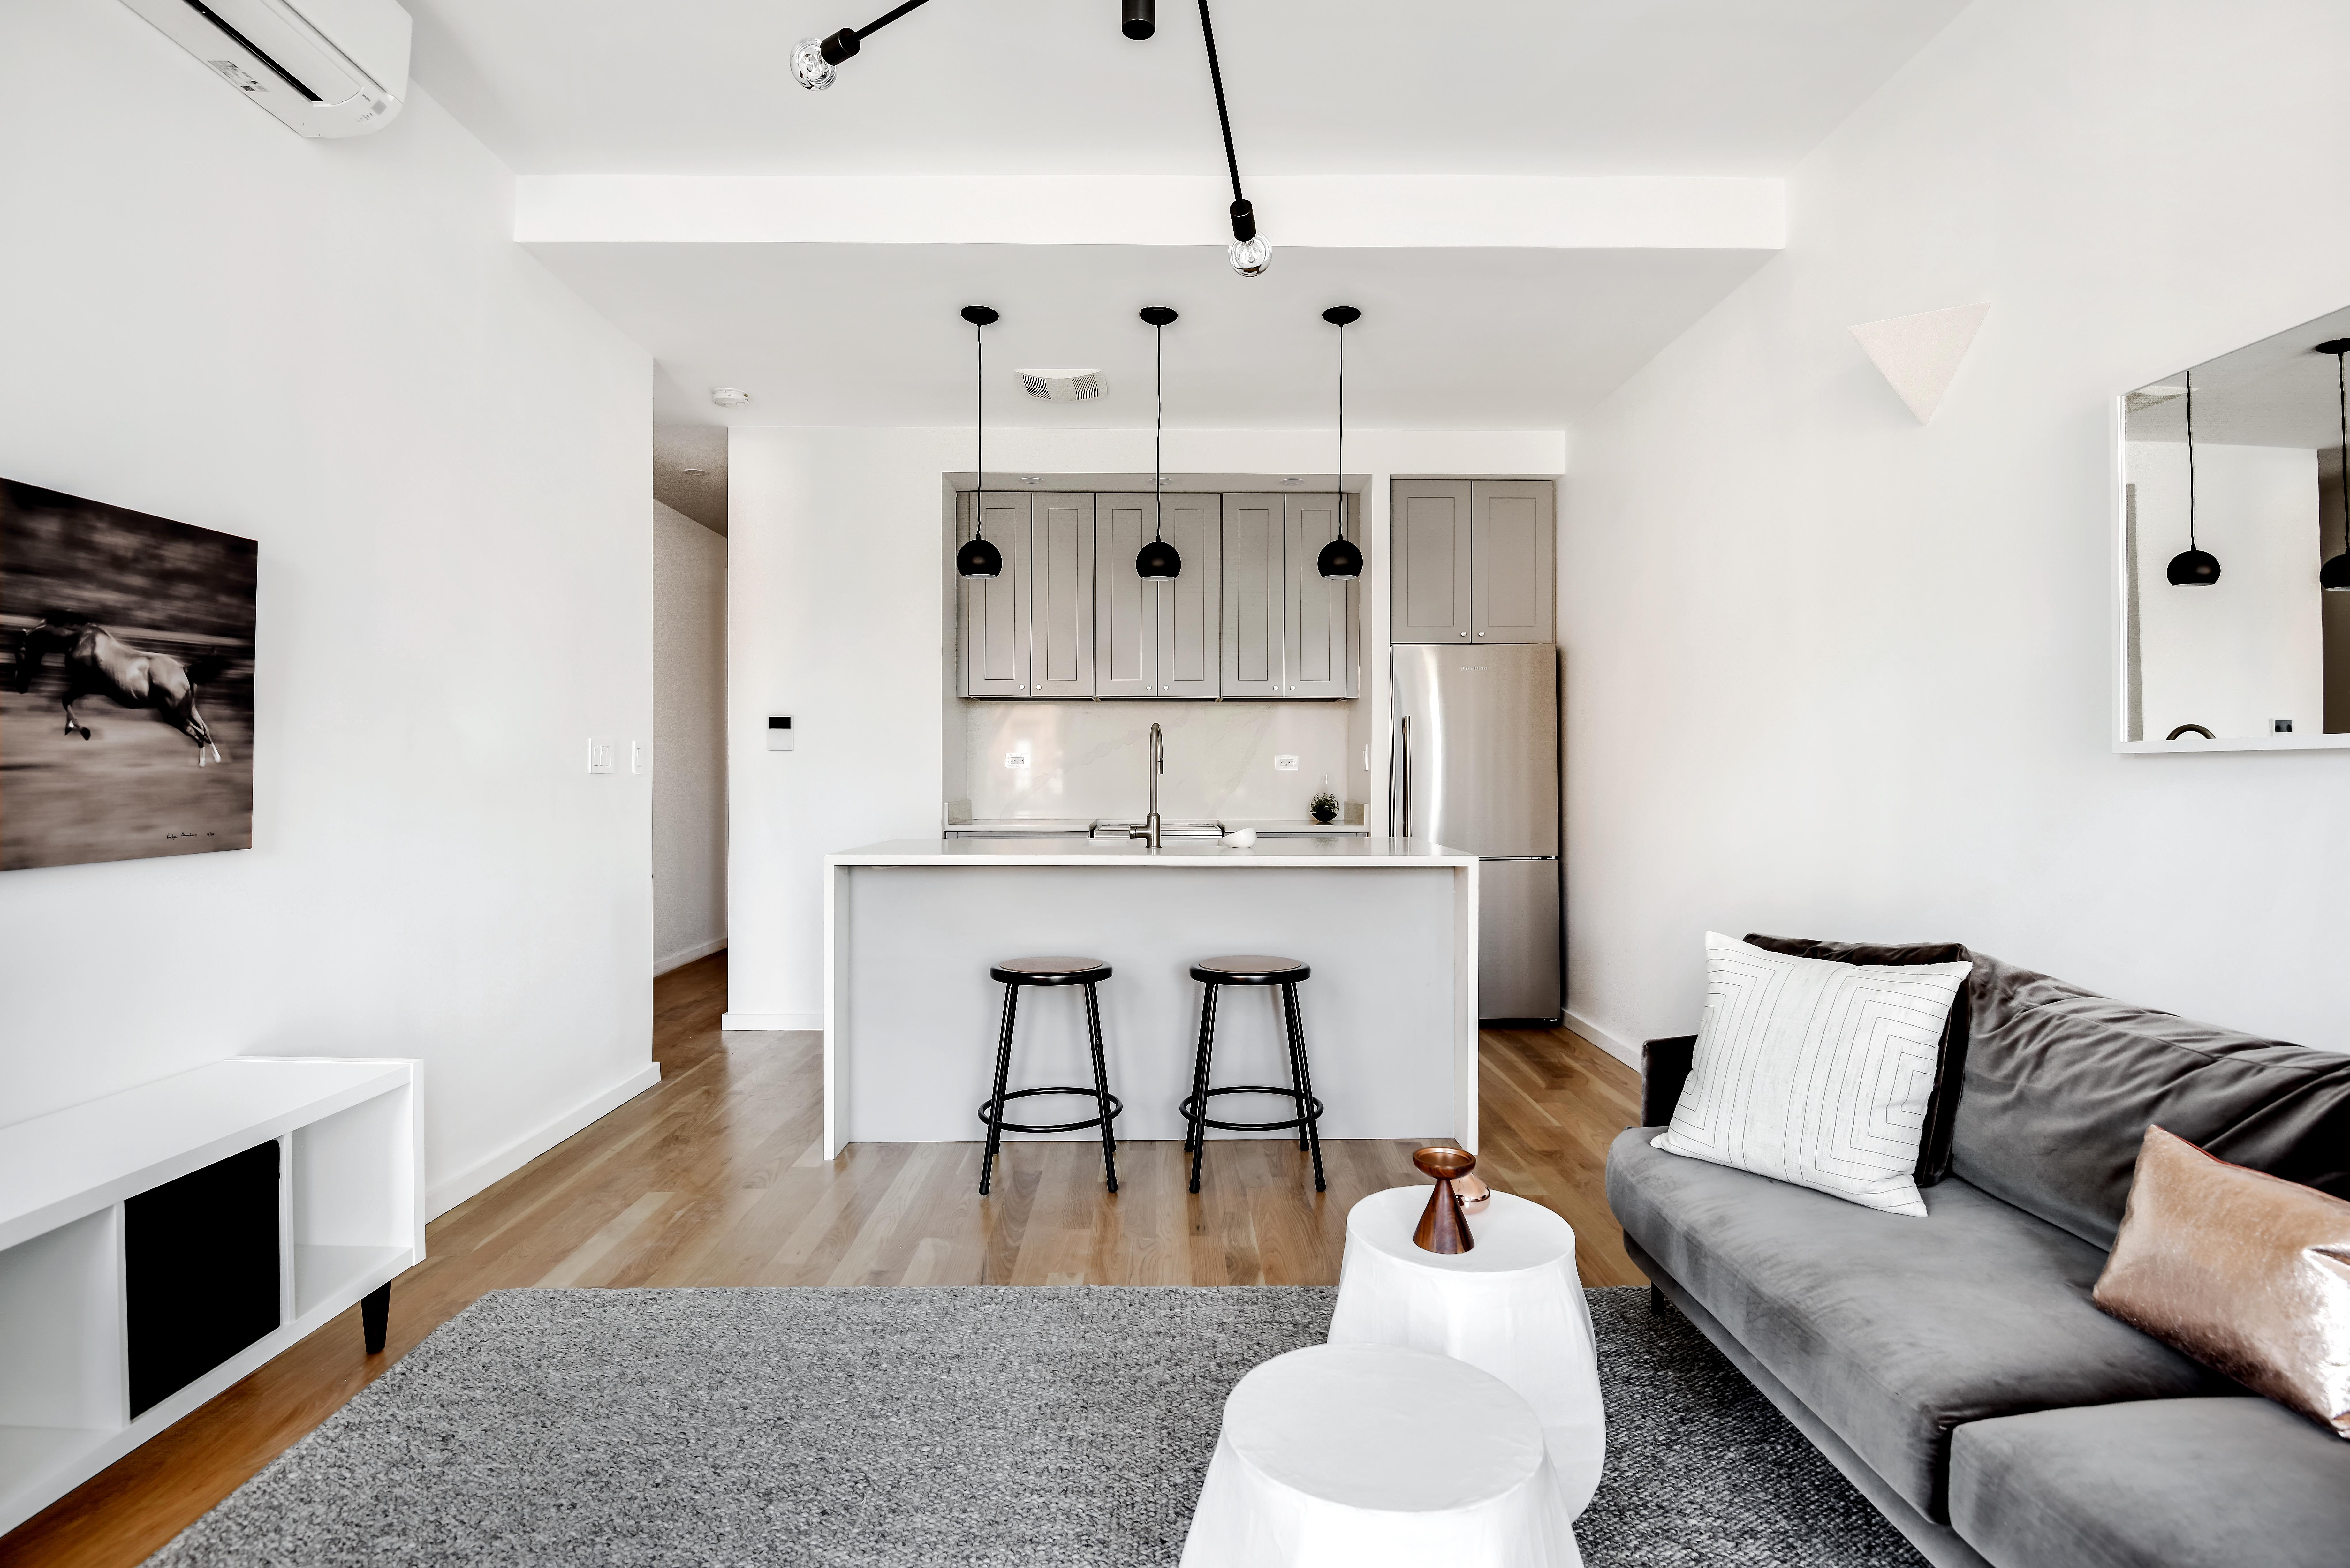 View of small apartment kitchen from white-walled minimalist living room.